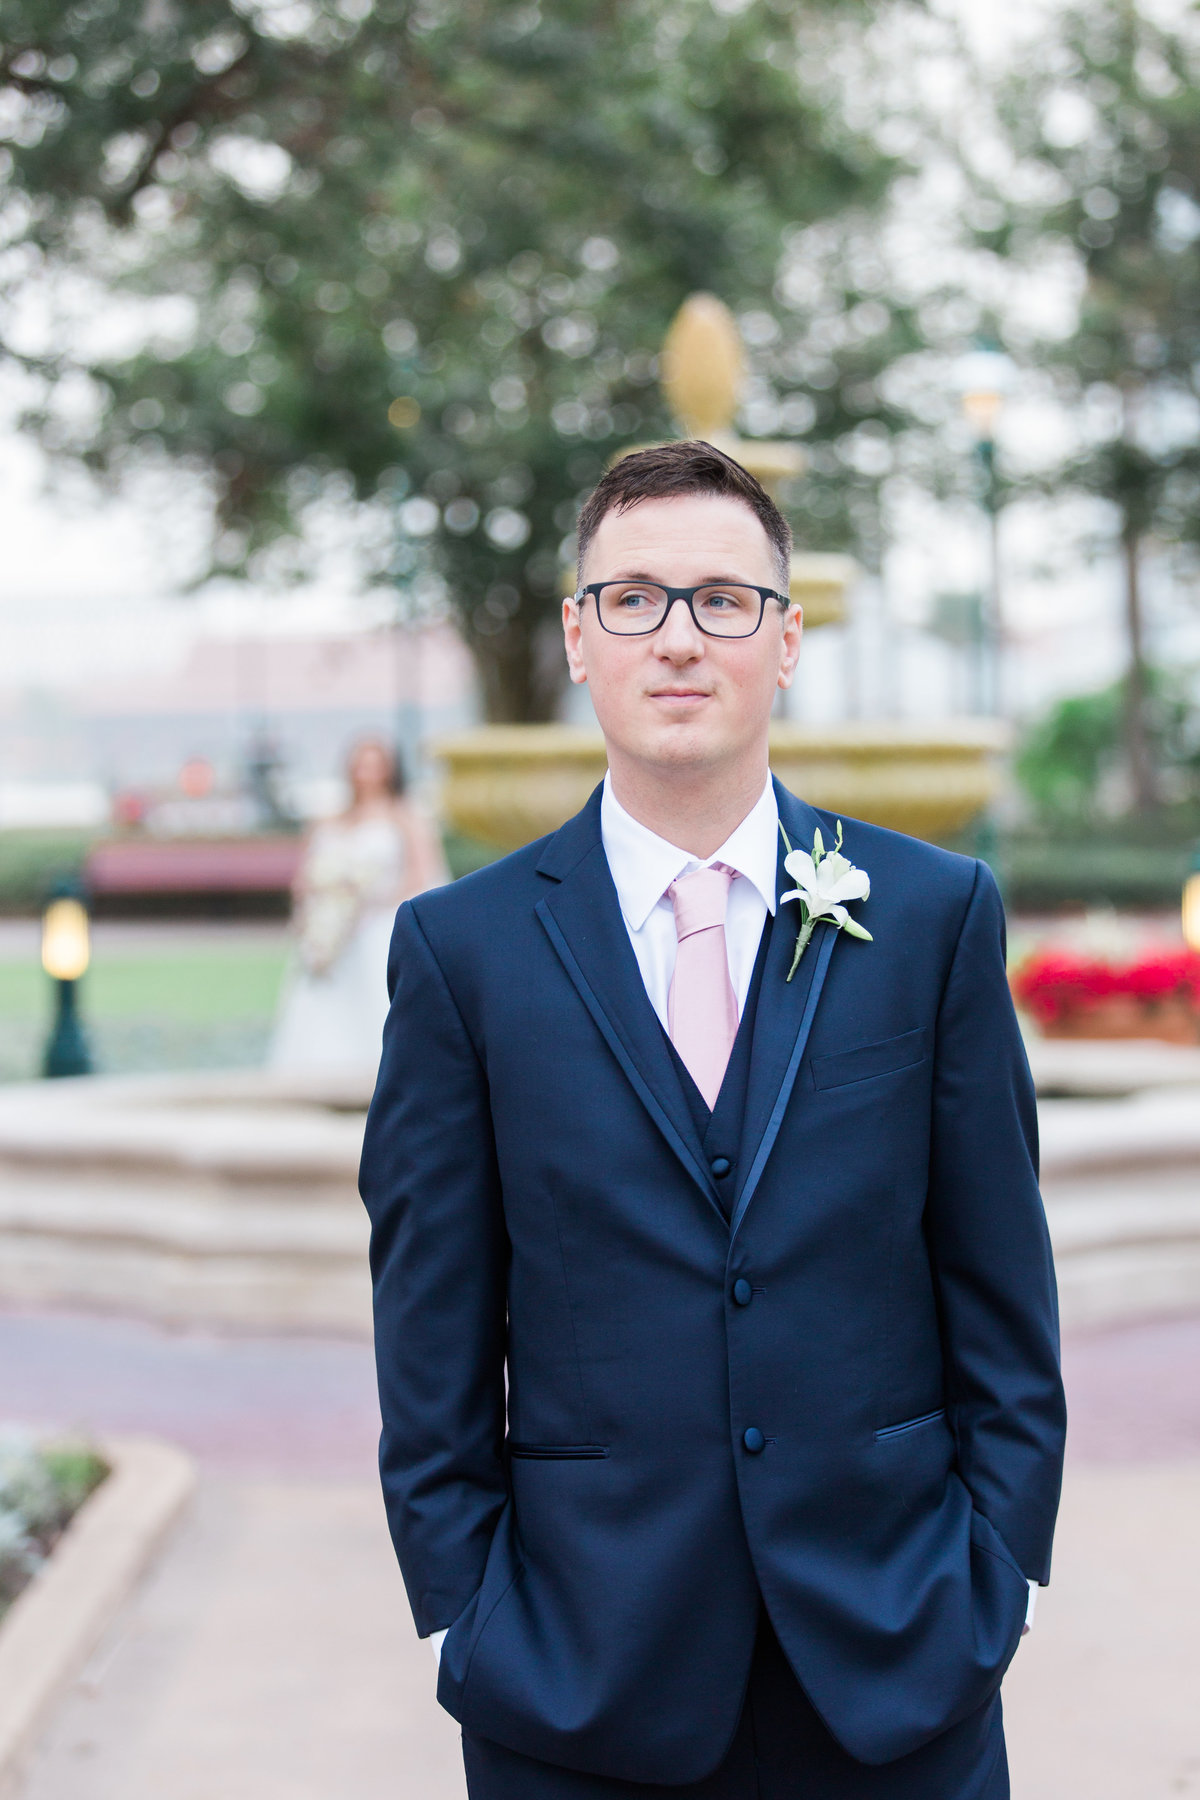 Jess Collins Photography Our Disney Wedding 2017 (181 of 668)